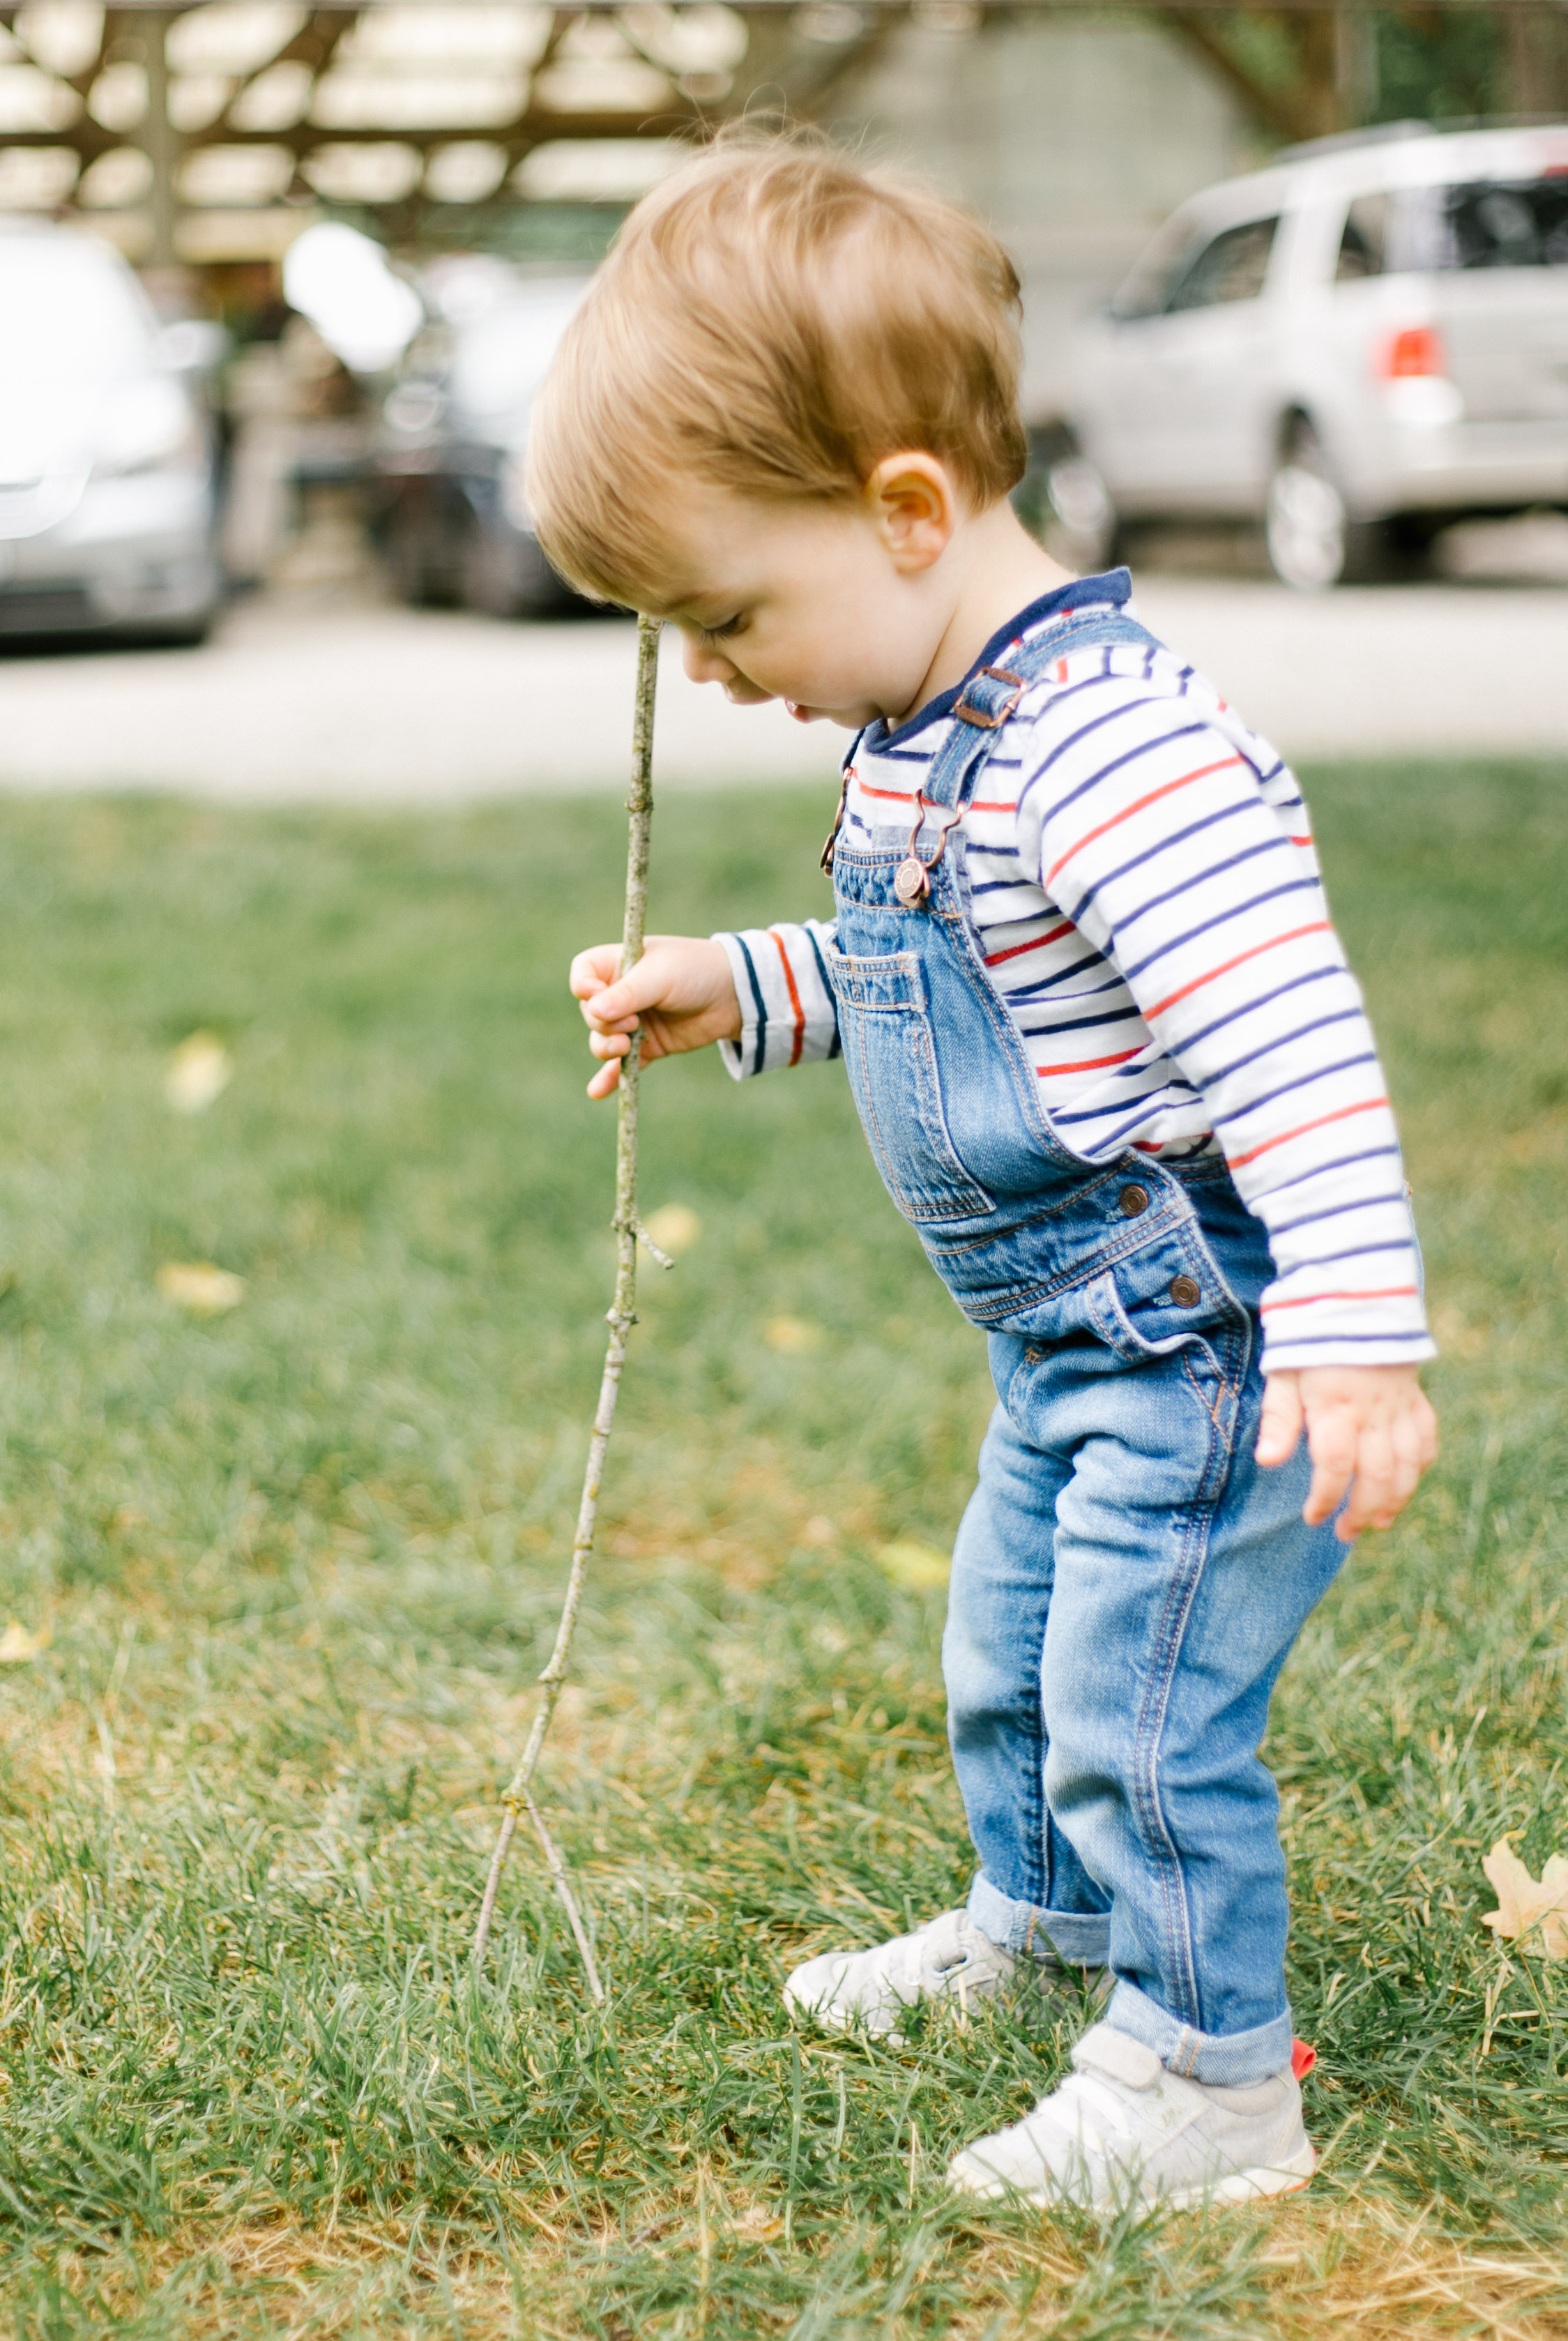 Fine art portraits of my child at the Redmond Farmer Market | Chelsea Macor Photography Seattle and Bellevue Family Photography-3.jpg